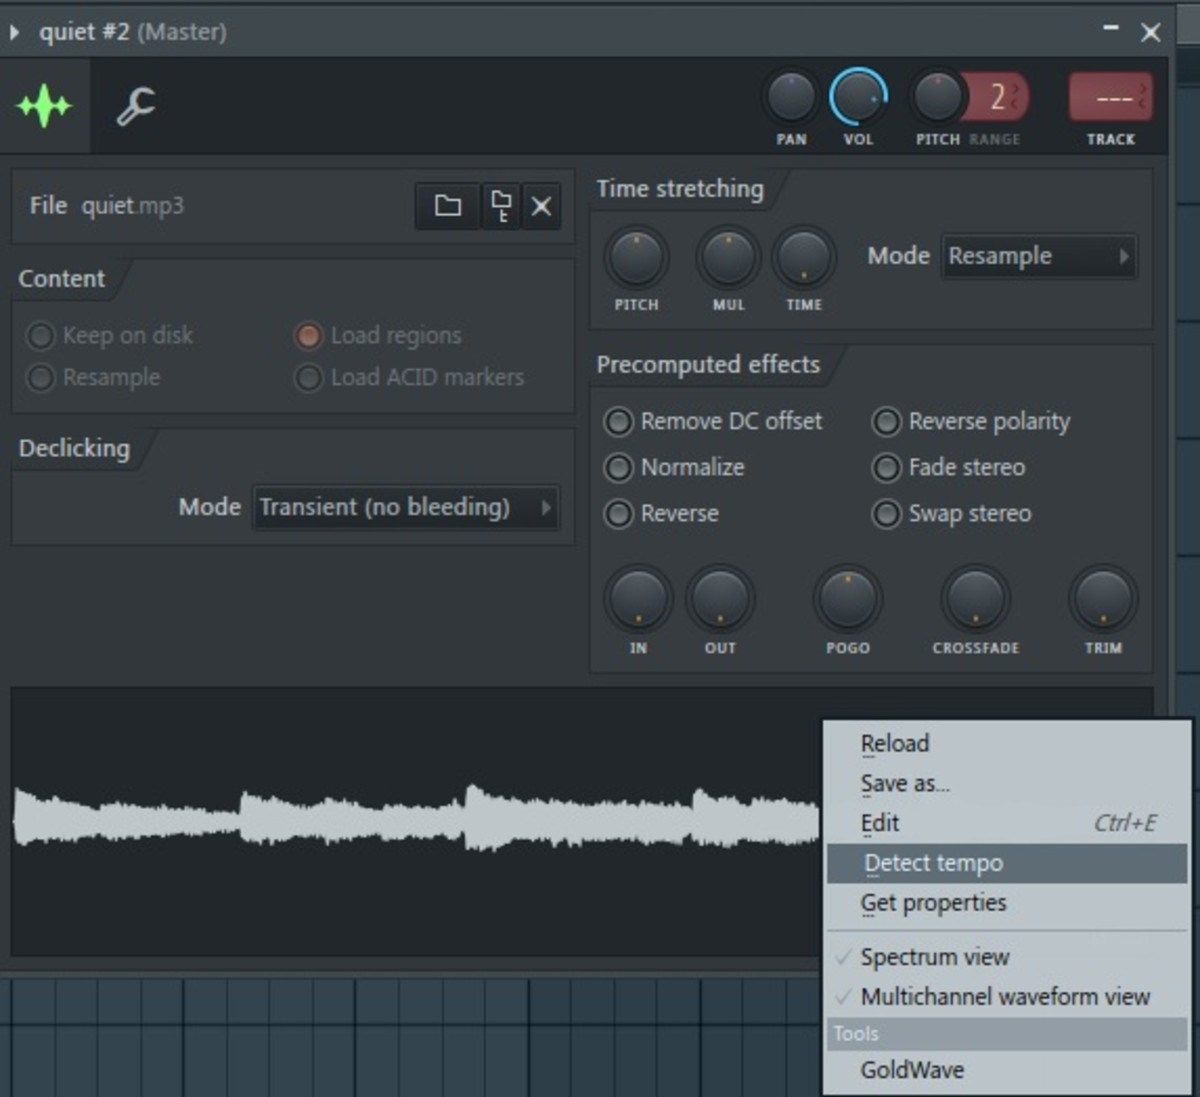 3-ways-to-detect-the-tempo-in-fl-studio